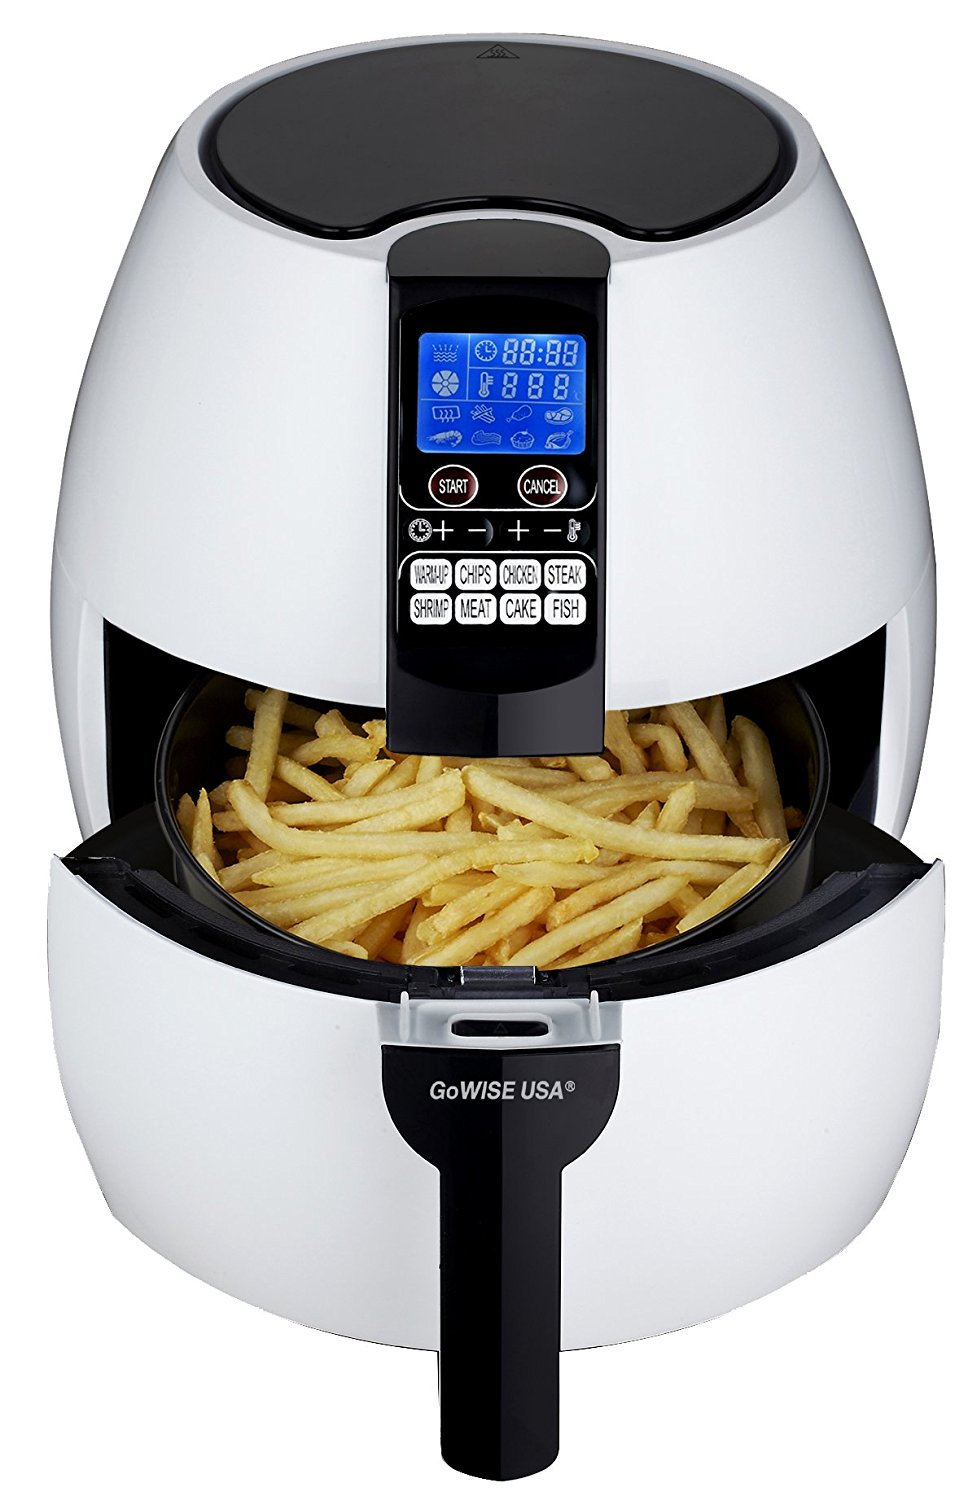 GoWISE USA 8-in-1. Electric Air Fryer Digital Programmable Cooking Settings